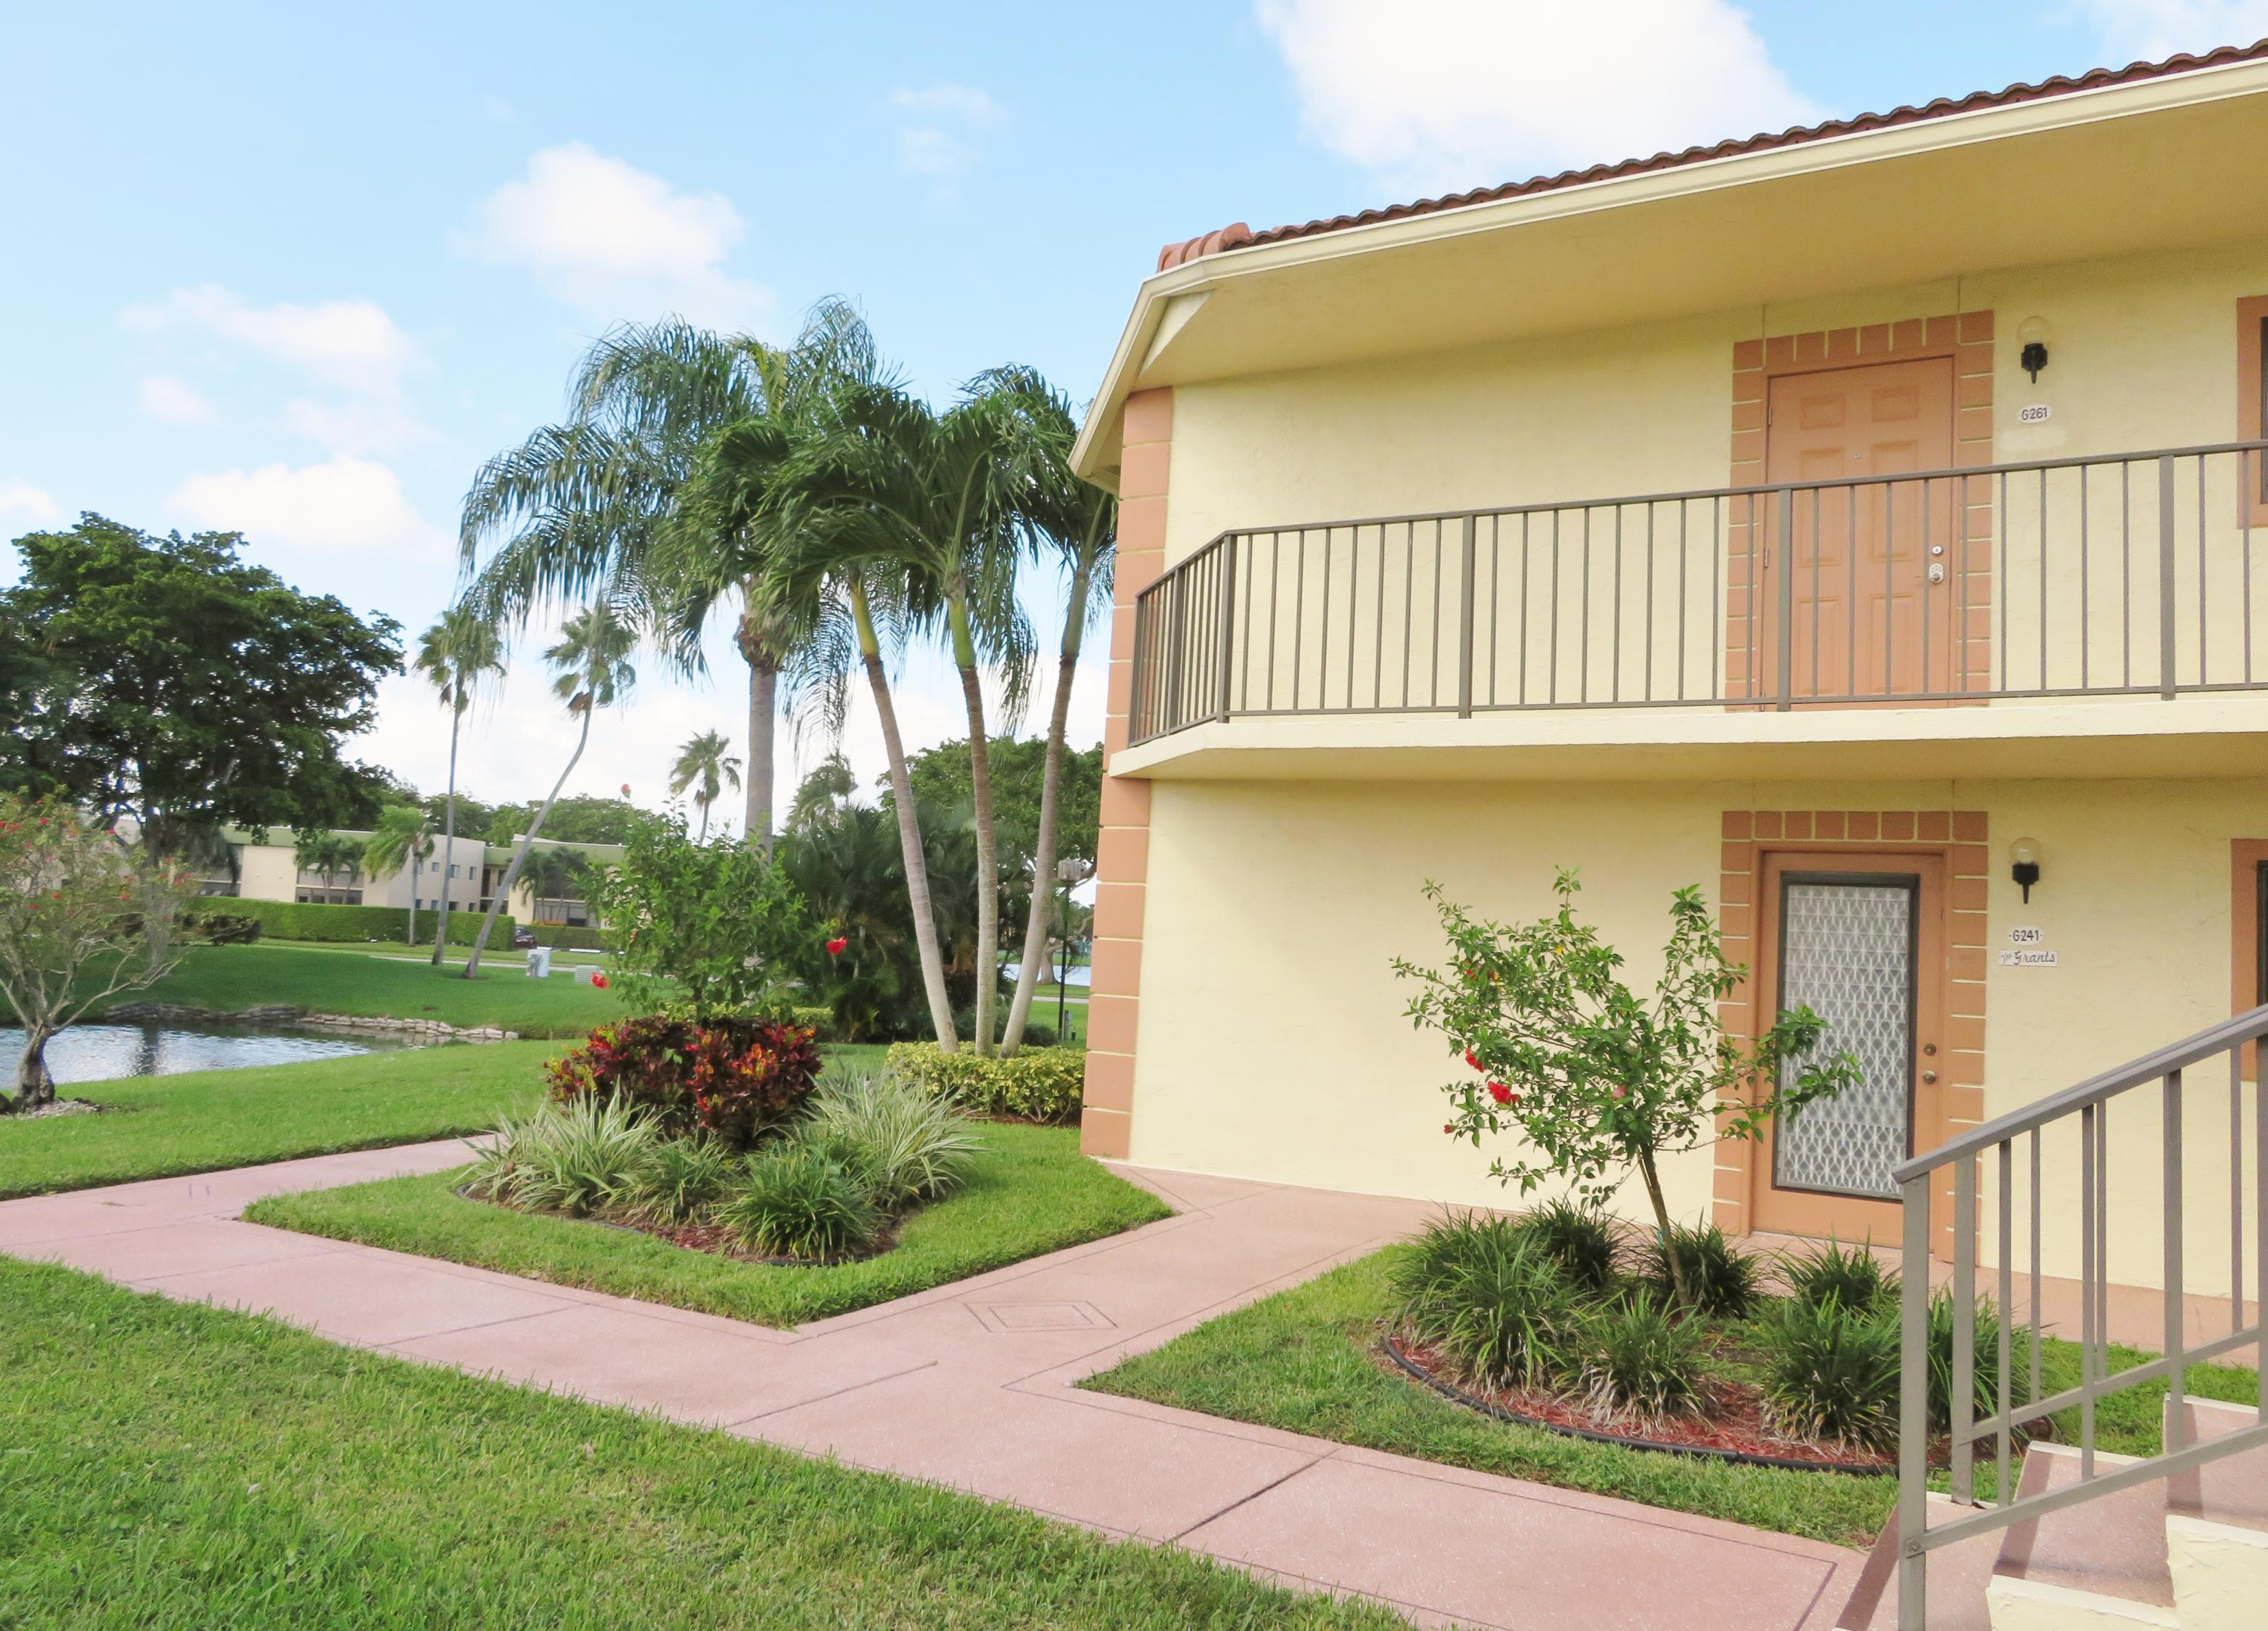 15234 Lakes Of Delray 261  Delray Beach, FL 33484